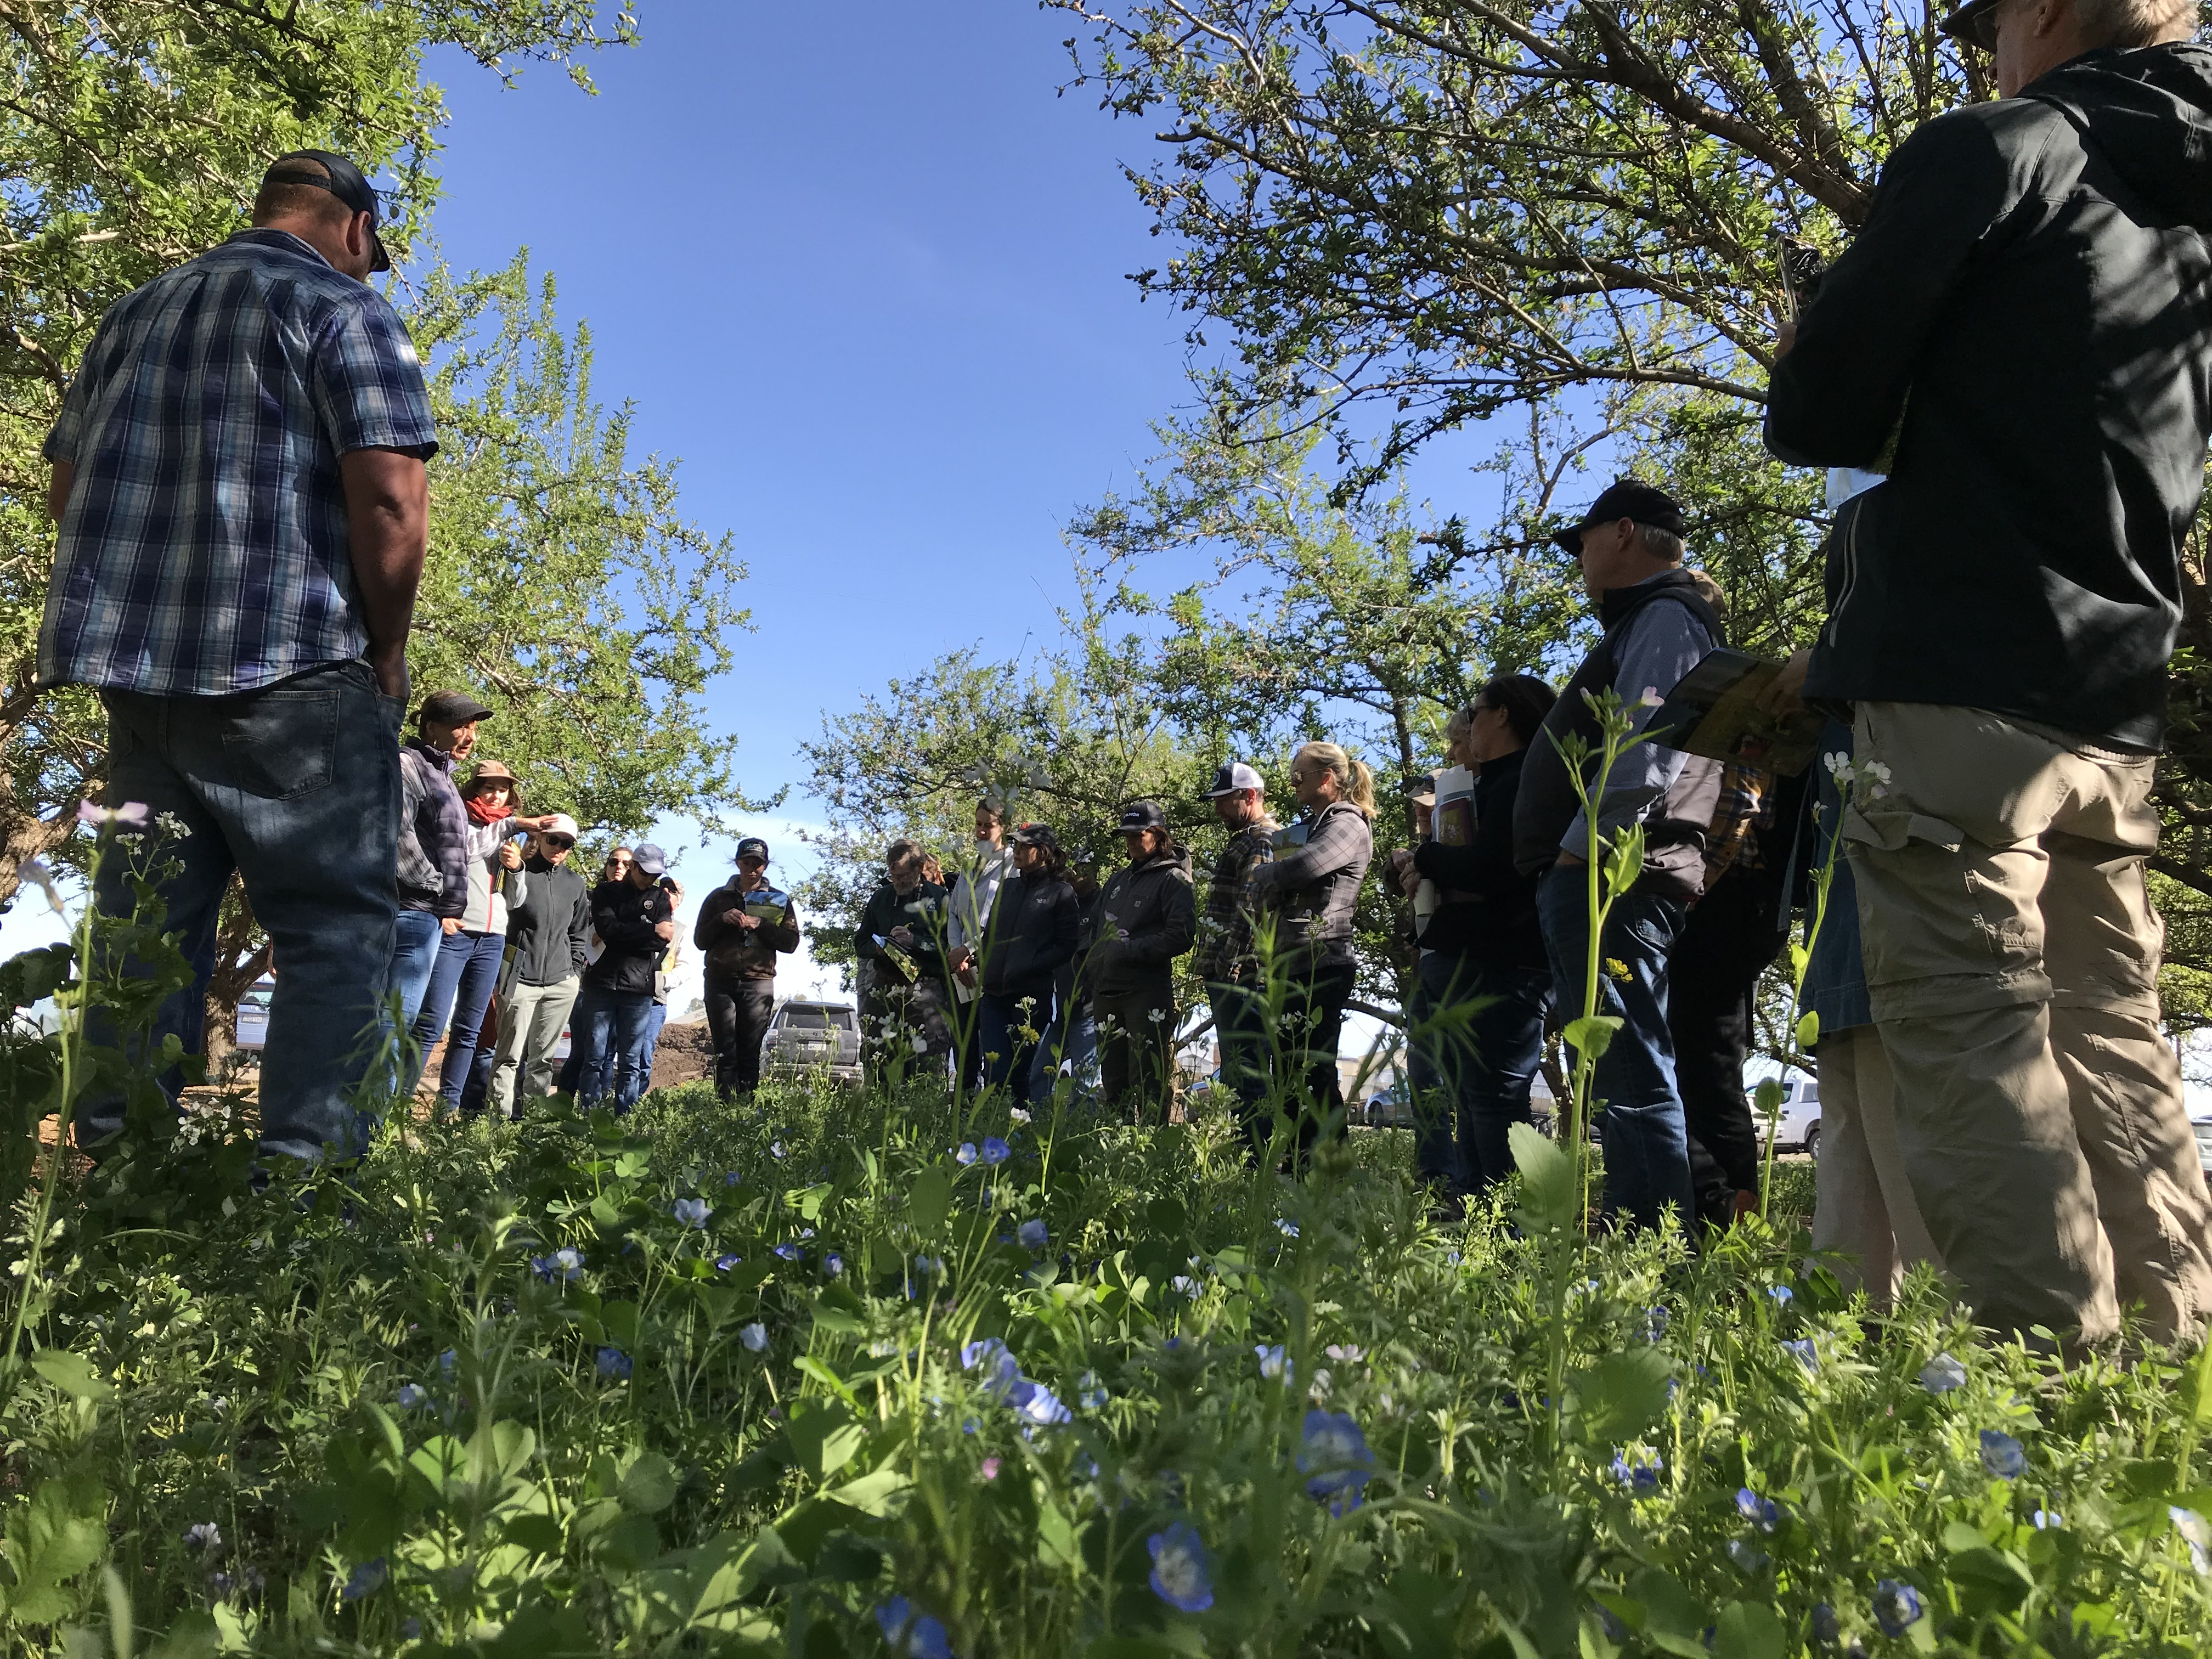 A group of people listen to a woman standing in the middle, presenting. They are in an orchard with flowering cover crops.